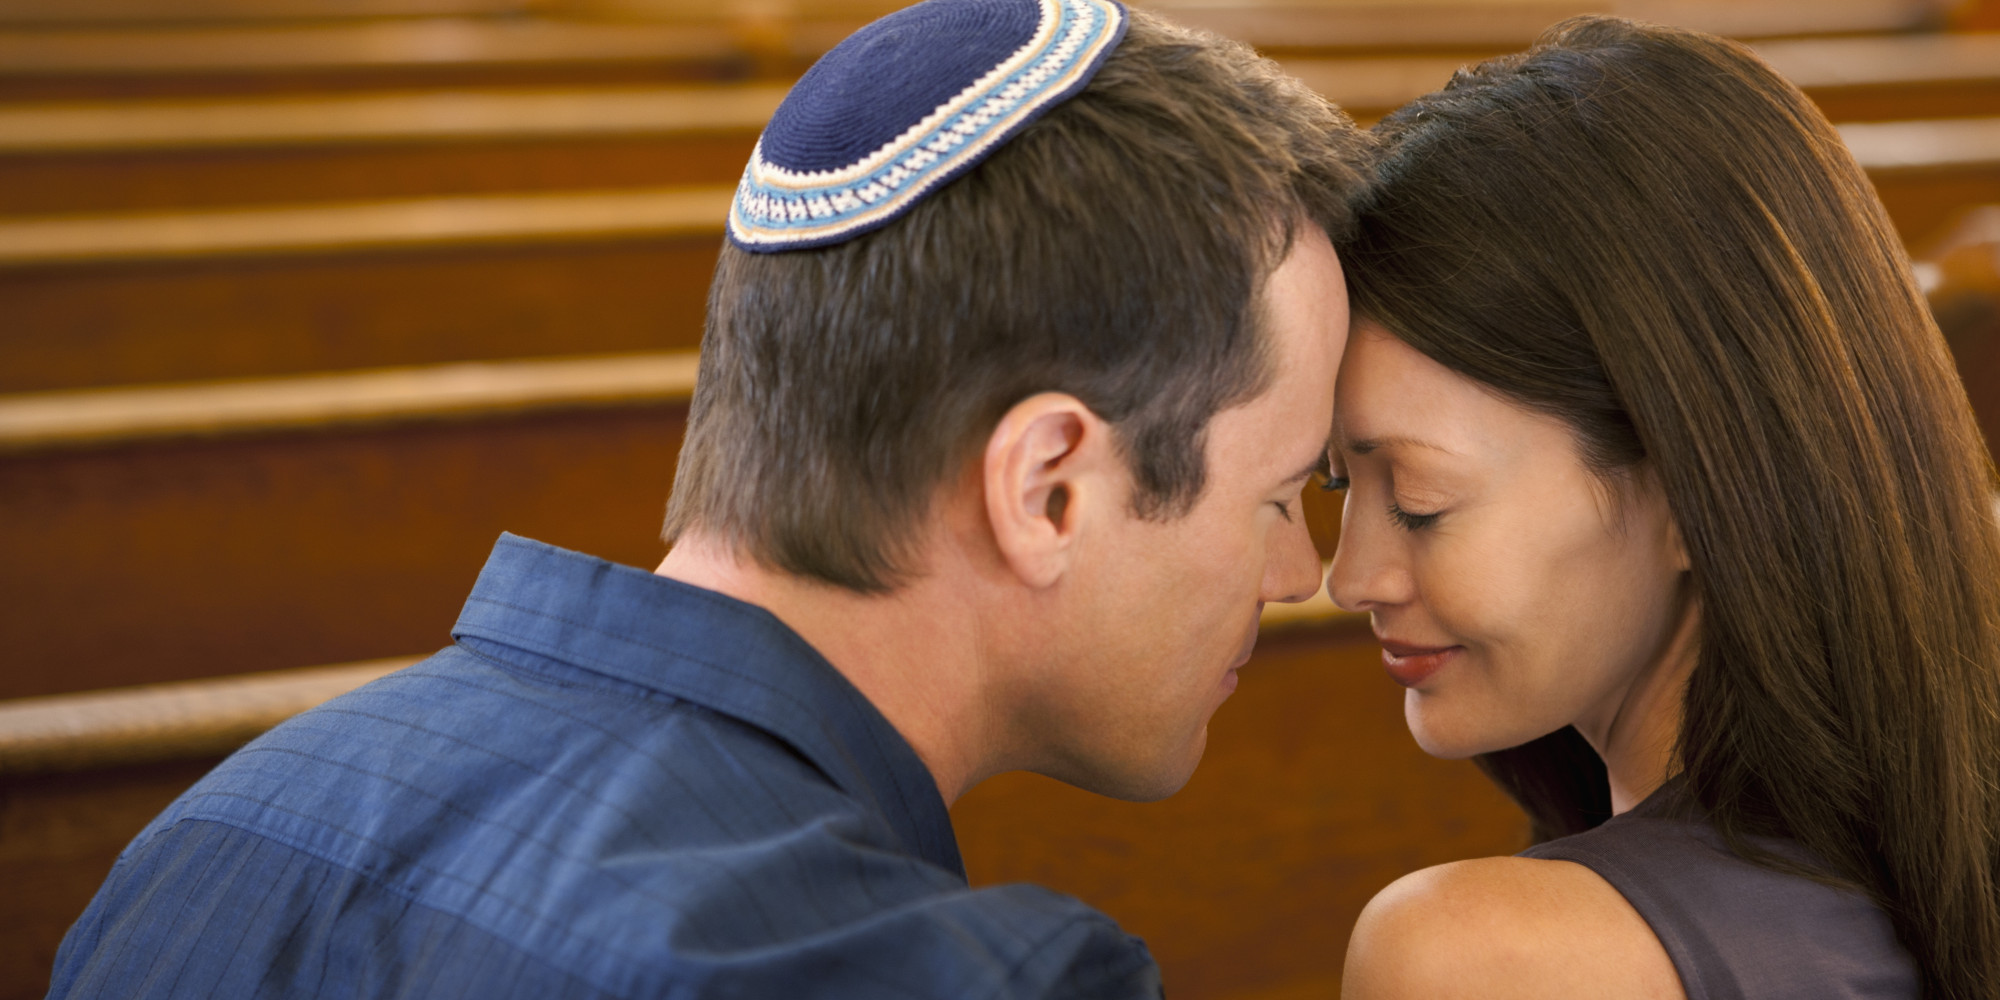 dating a jewish girl divorced